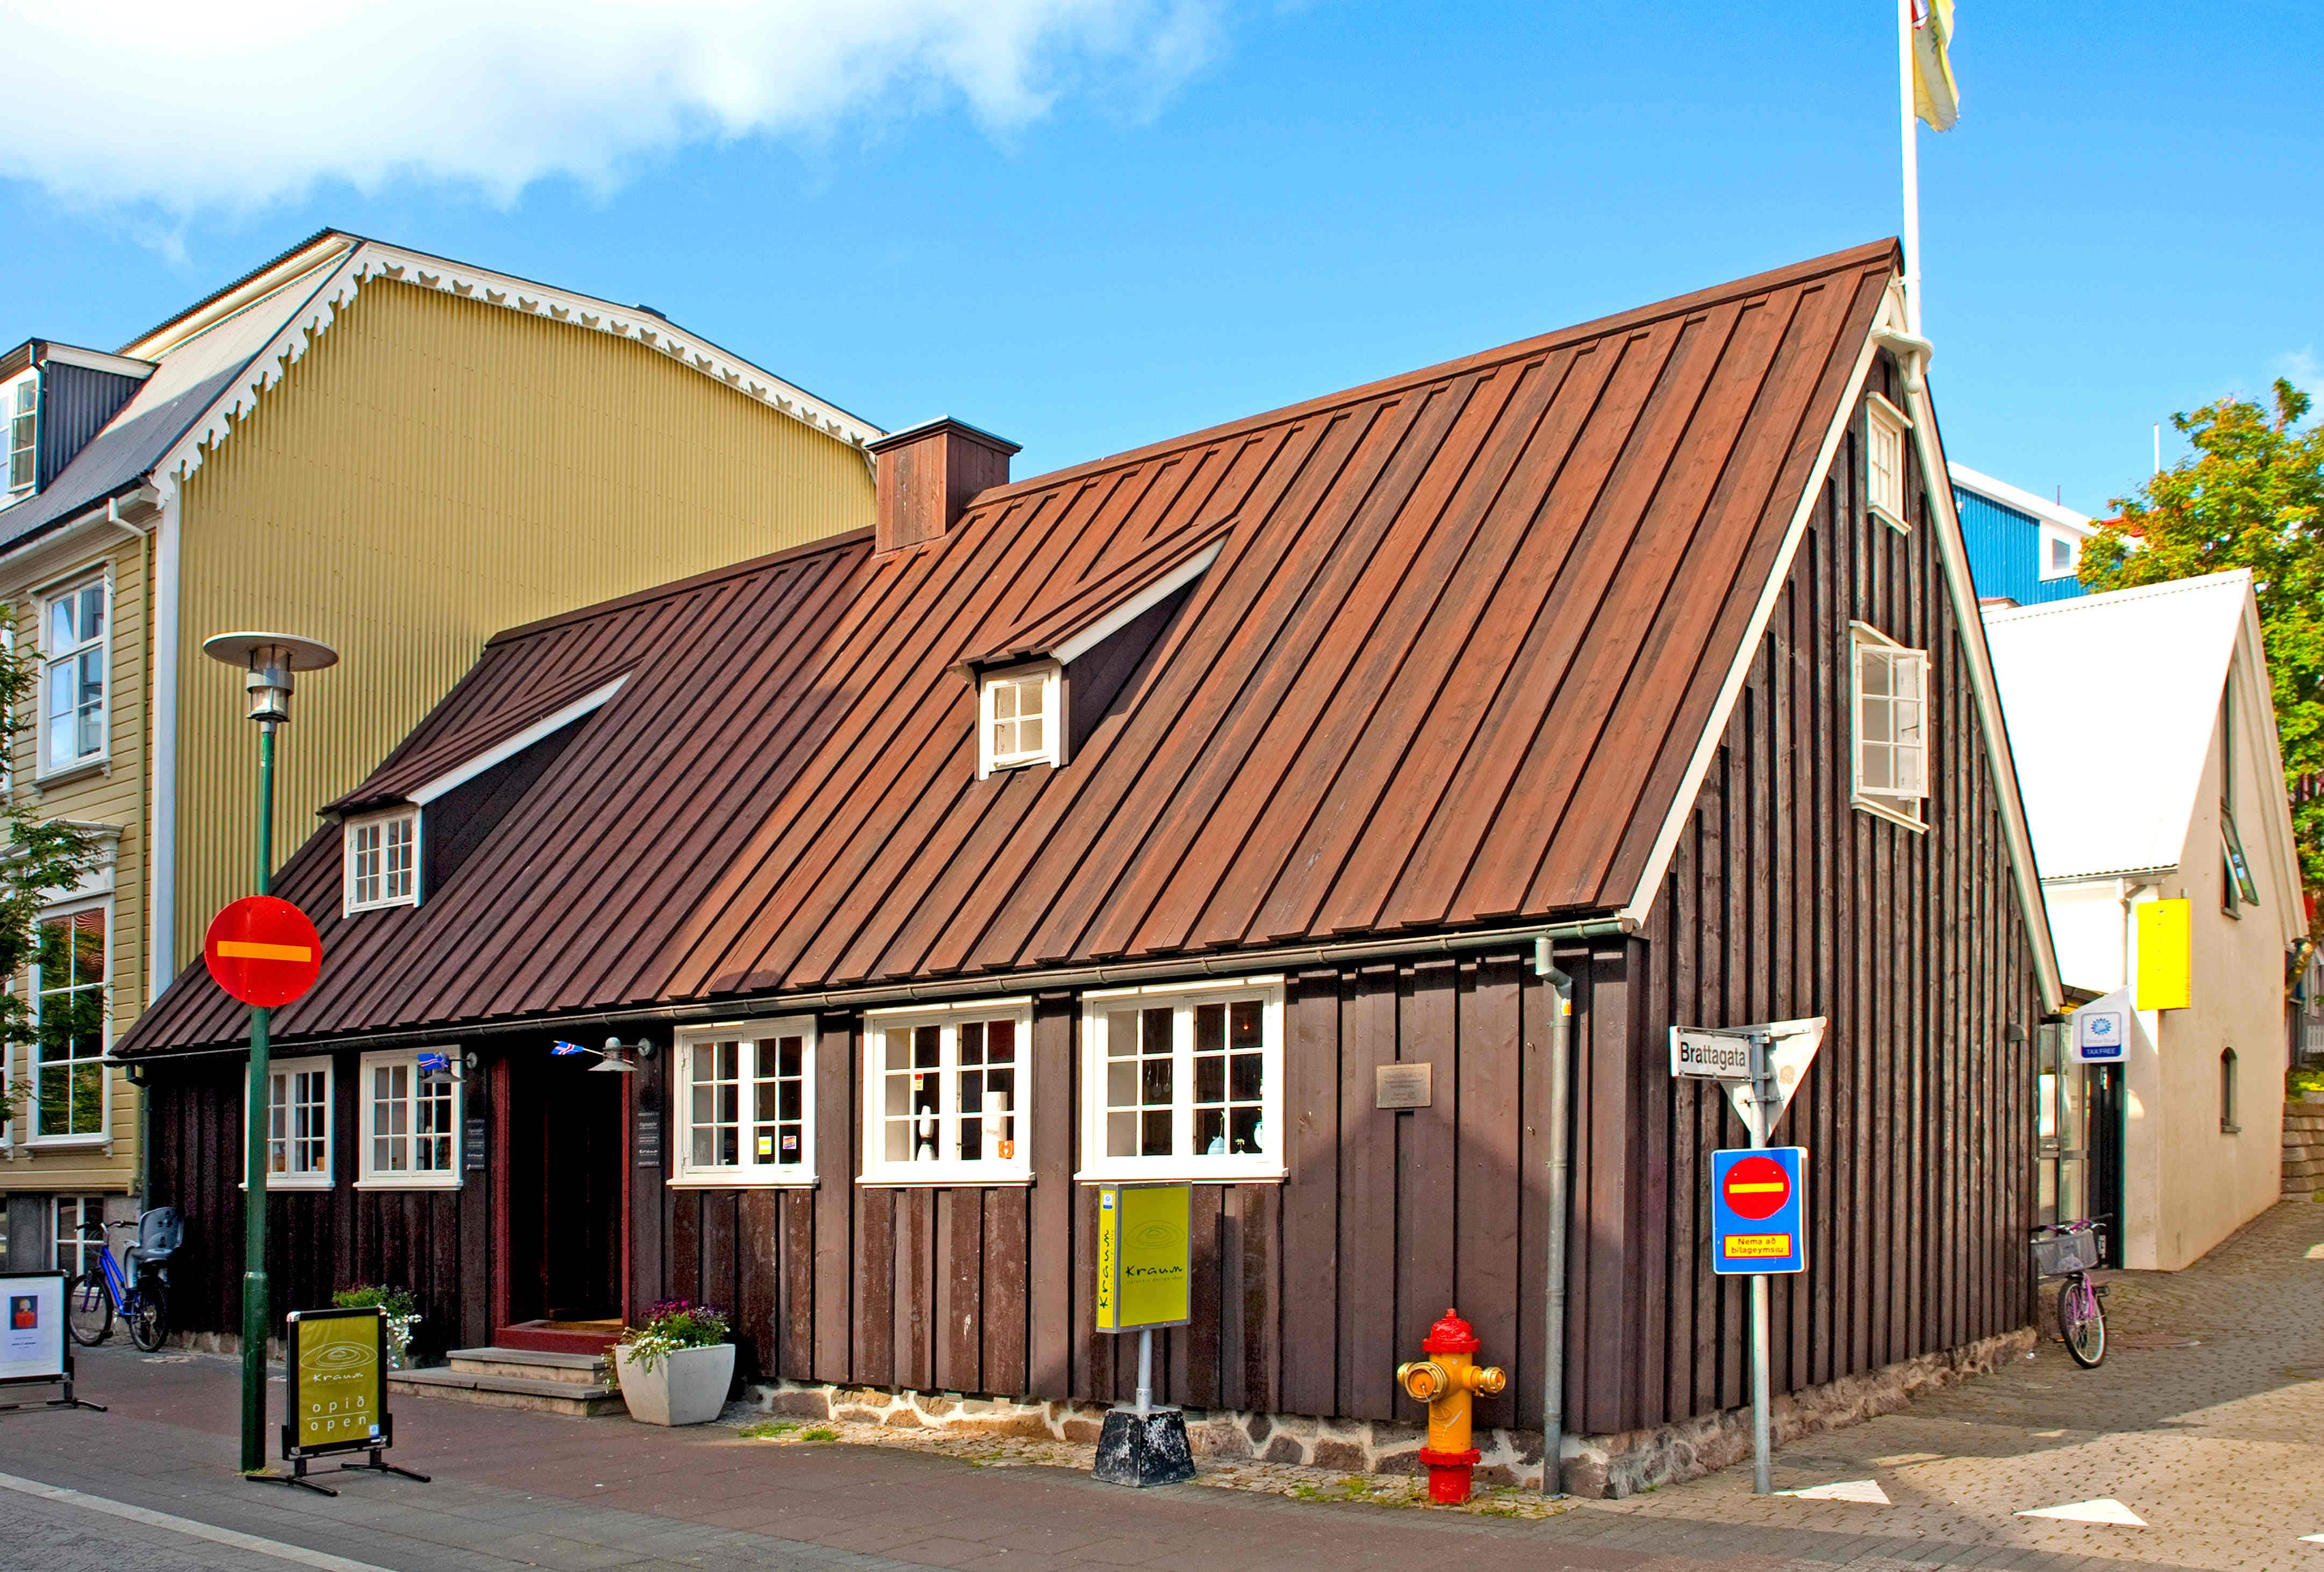 Reykjavík's oldest house dating from 1772 to be turned into a museum